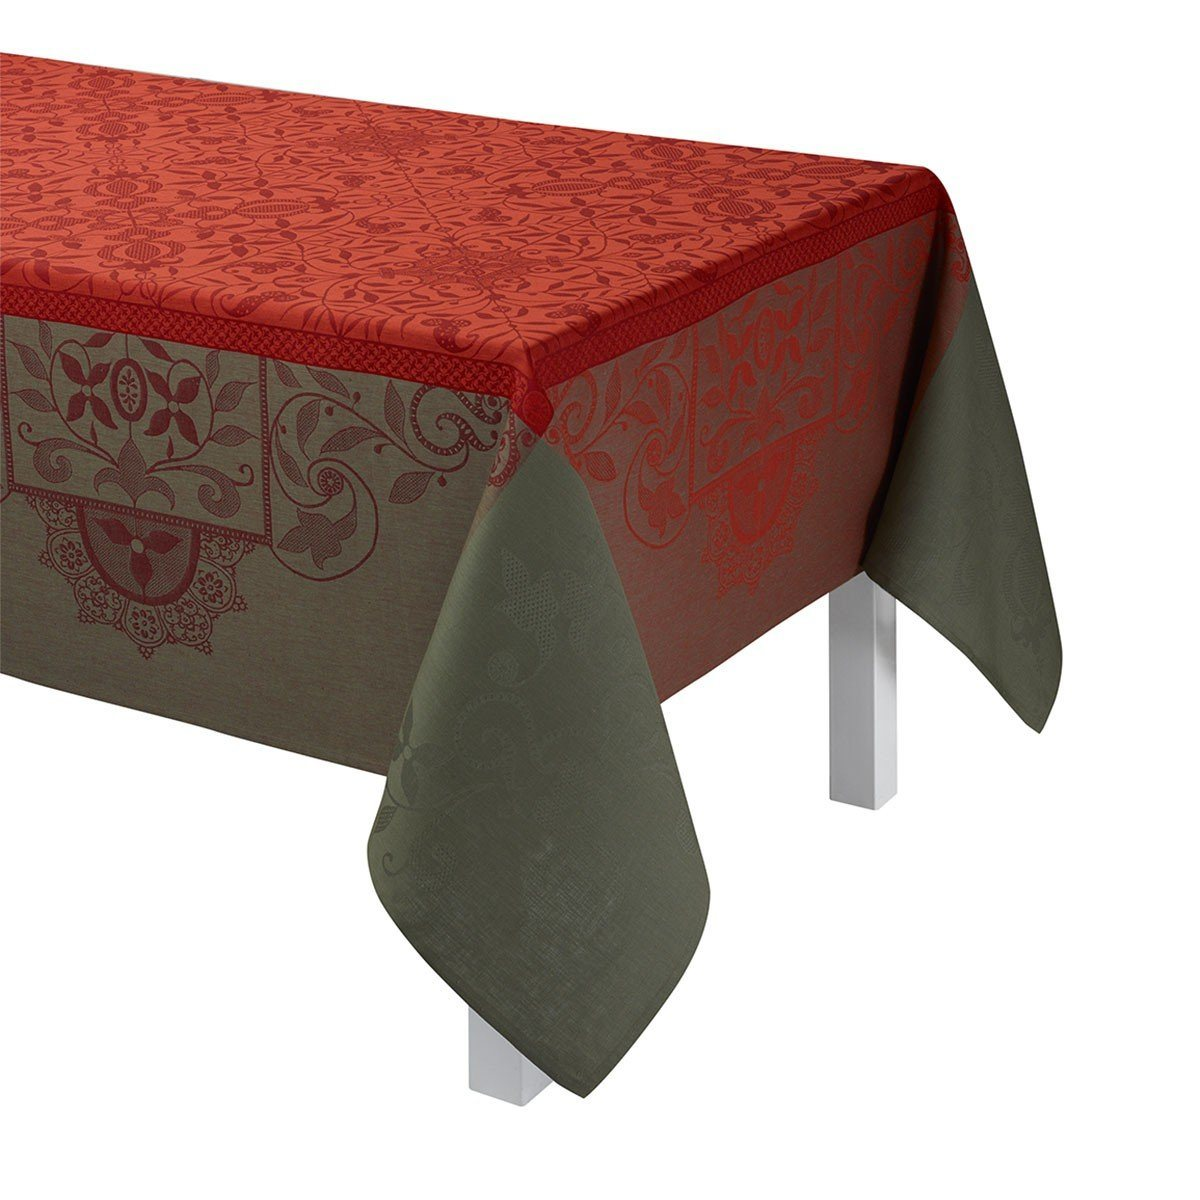 Le Jacquard Français Table Linen Venezia in Cornelian Fig Linens Orange Tablecloth